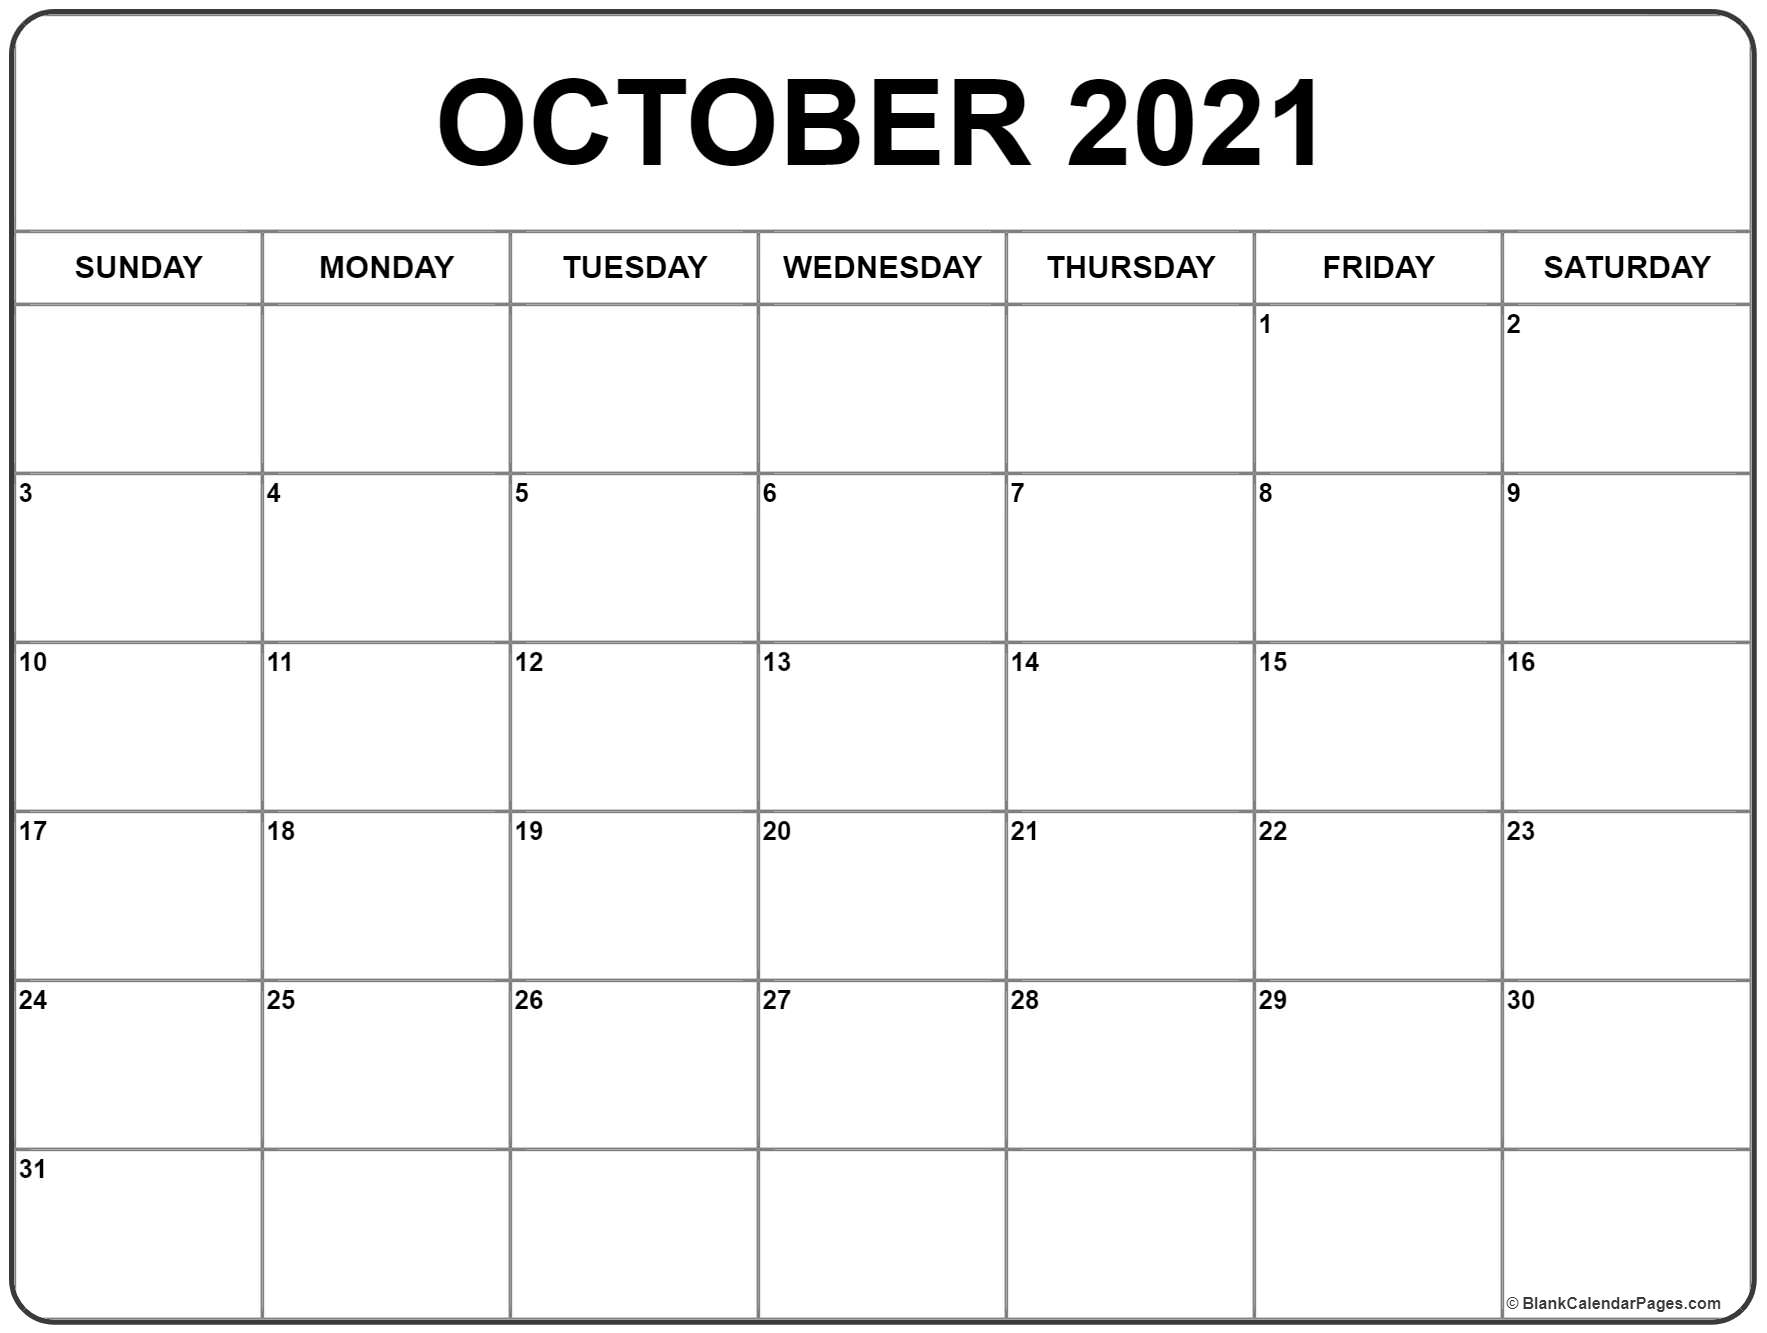 Printable Calendar October 2021 October 2021 calendar | free printable monthly calendars